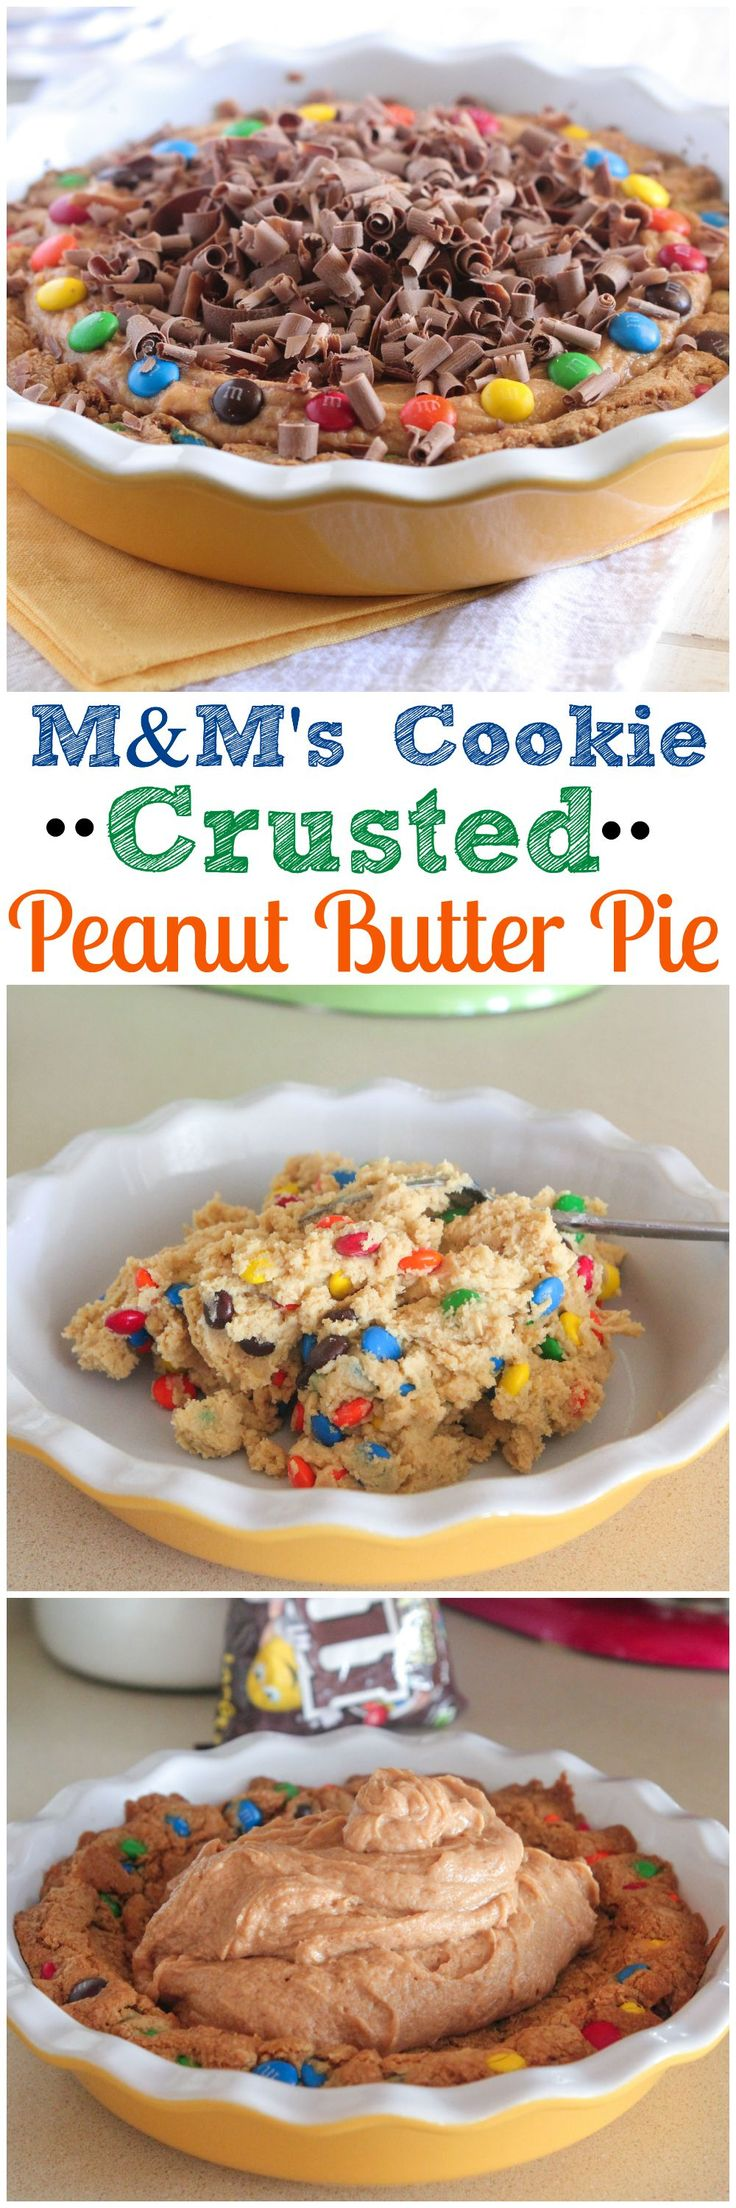 Check out this amazing recipe for an M&M's Cookie Crusted Peanut Butter Pie from @jennyflake at Picky-Palate.net!